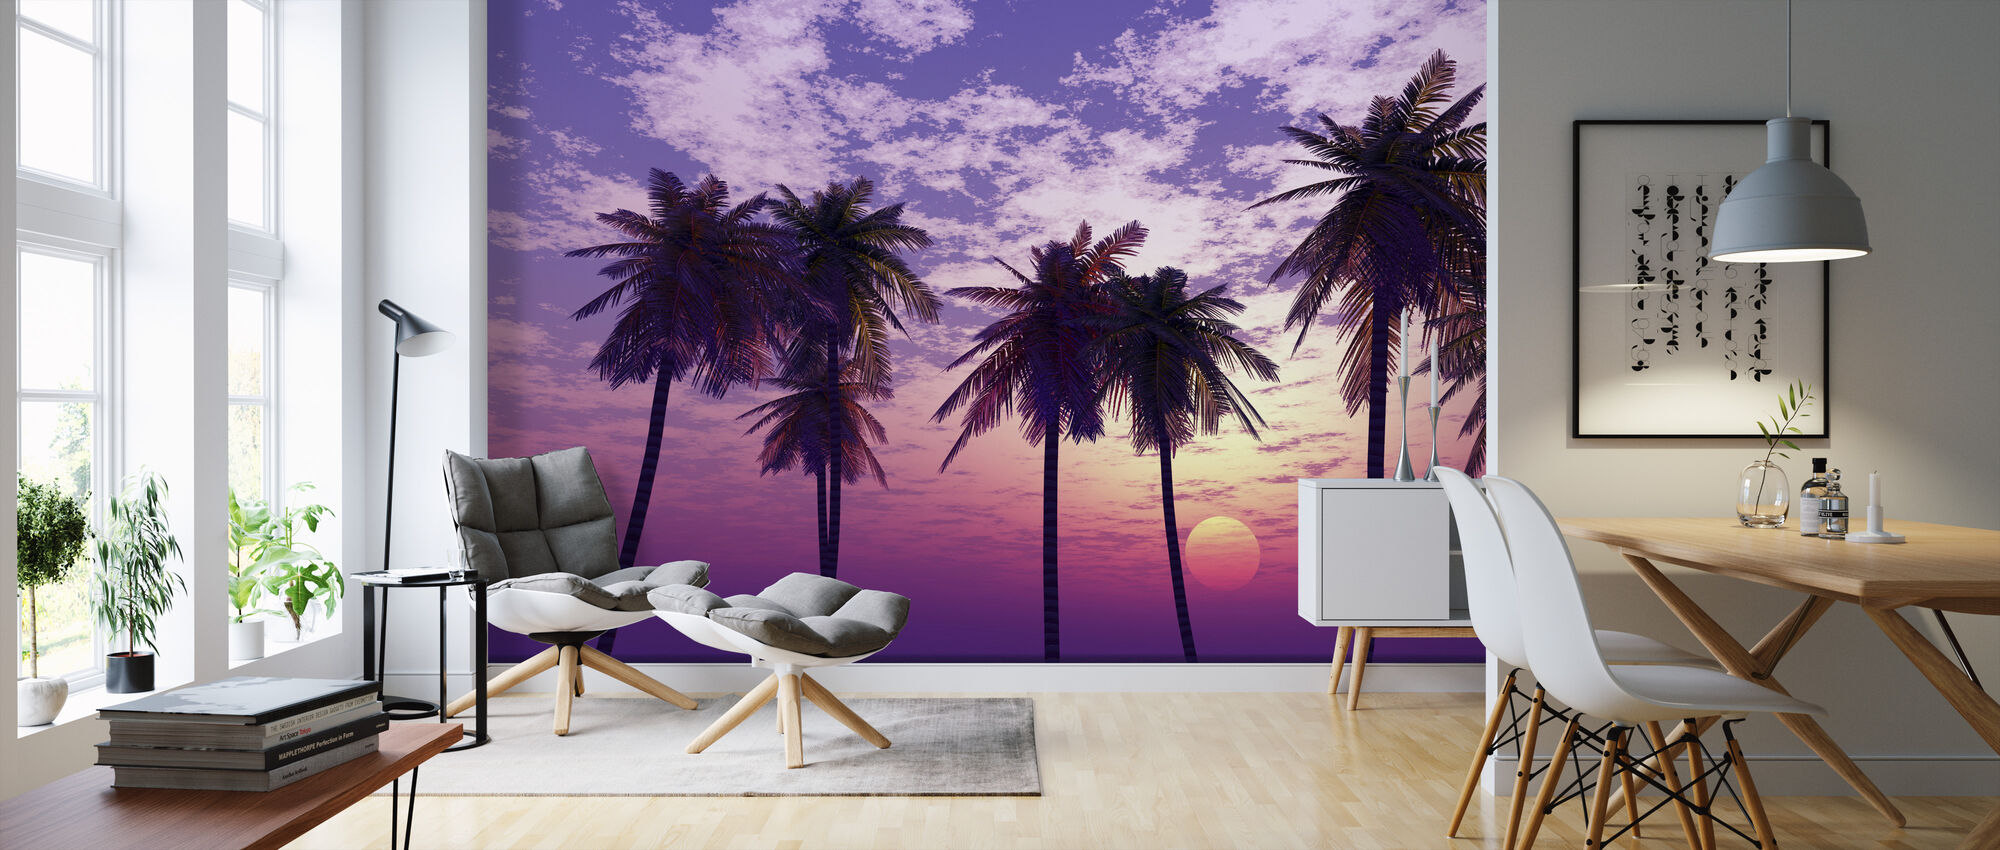 Beautiful Sunset - Wallpaper - Living Room